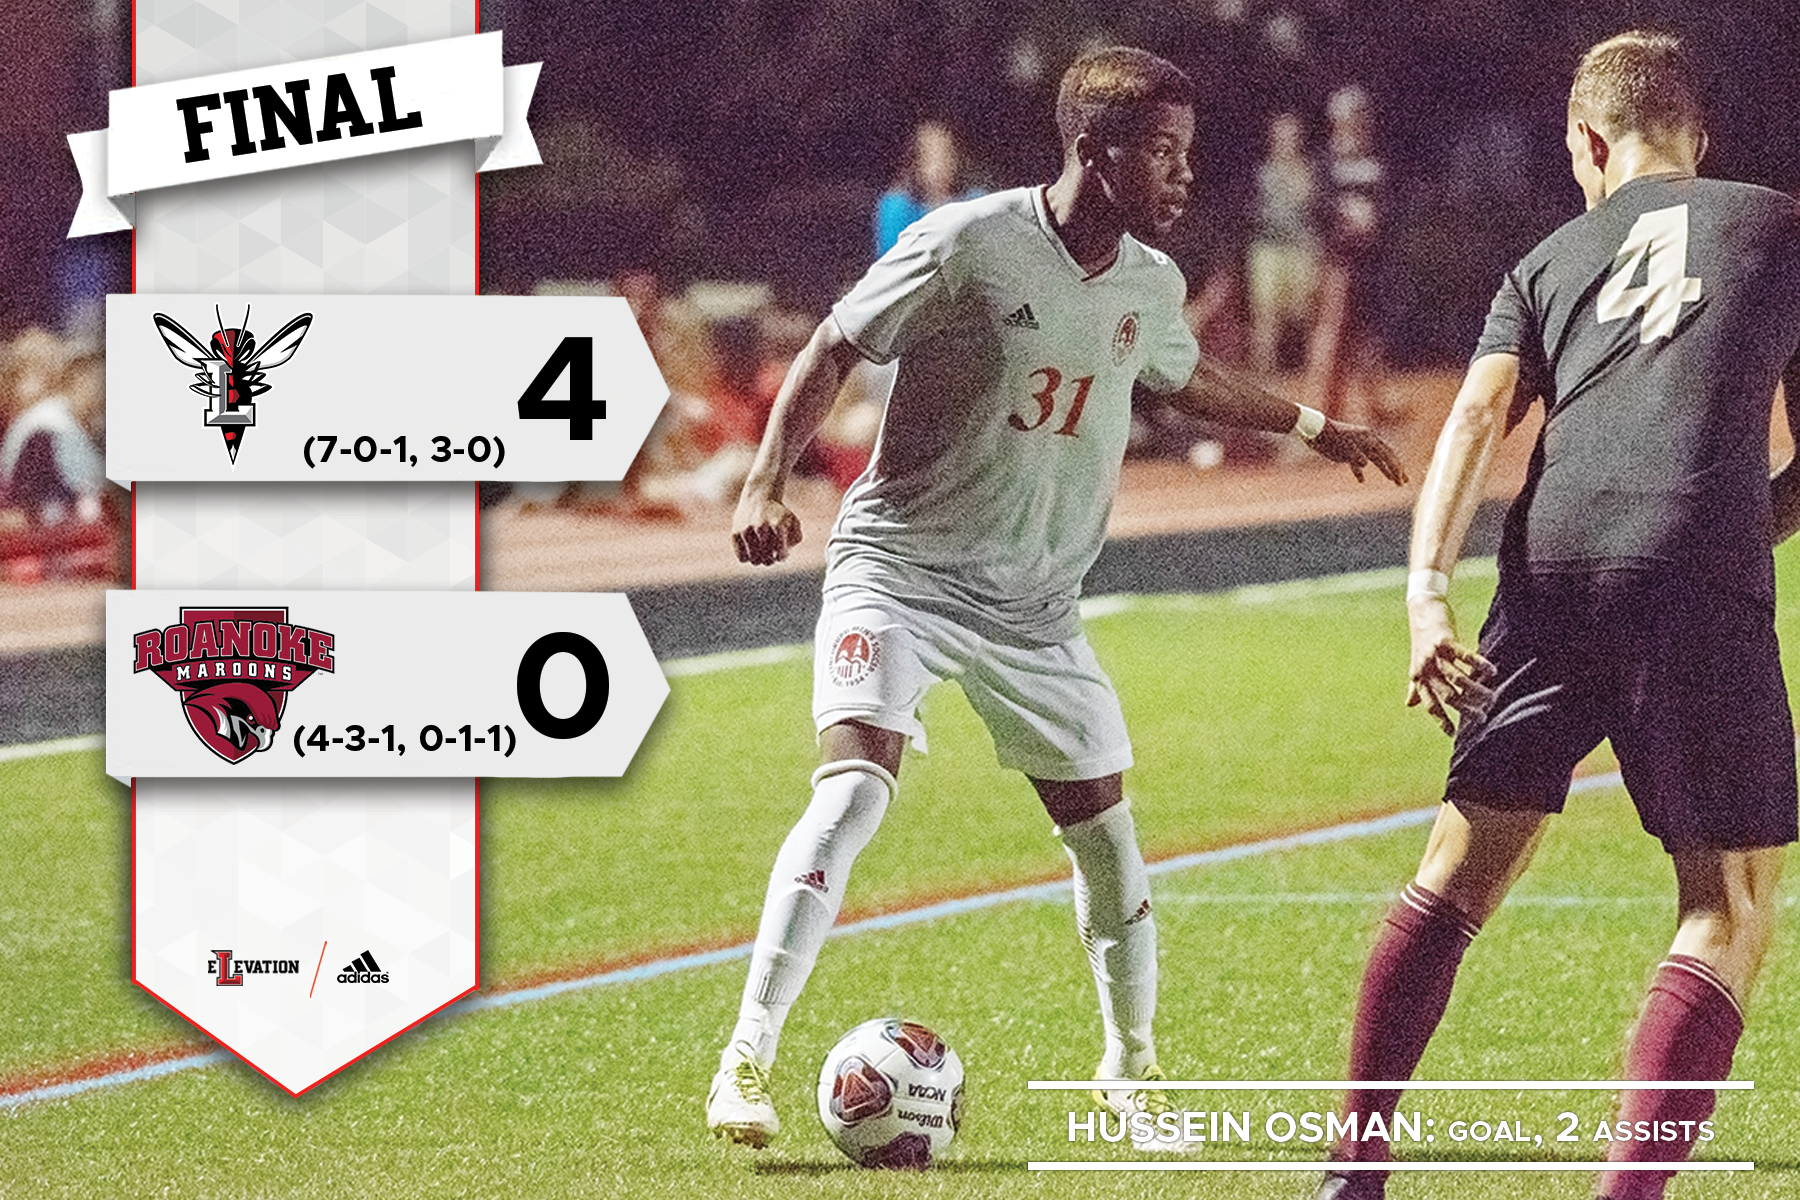 Hussein Osman kicking a soccer ball. Graphic showing Lynchburg's 4-0 win over Roanoke with team logos.